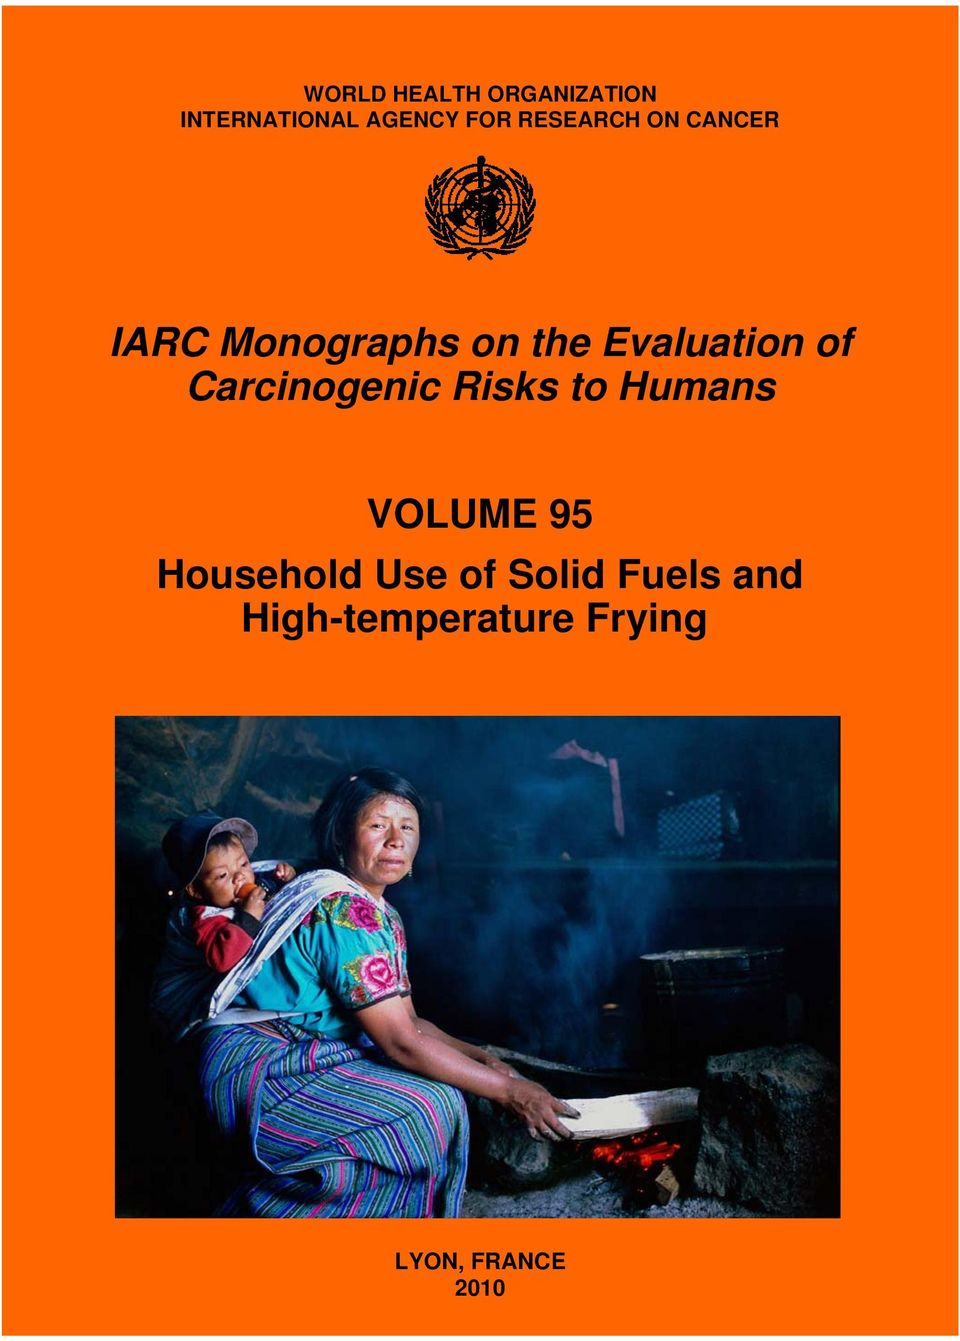 of Carcinogenic Risks to Humans VOLUME 95 Household